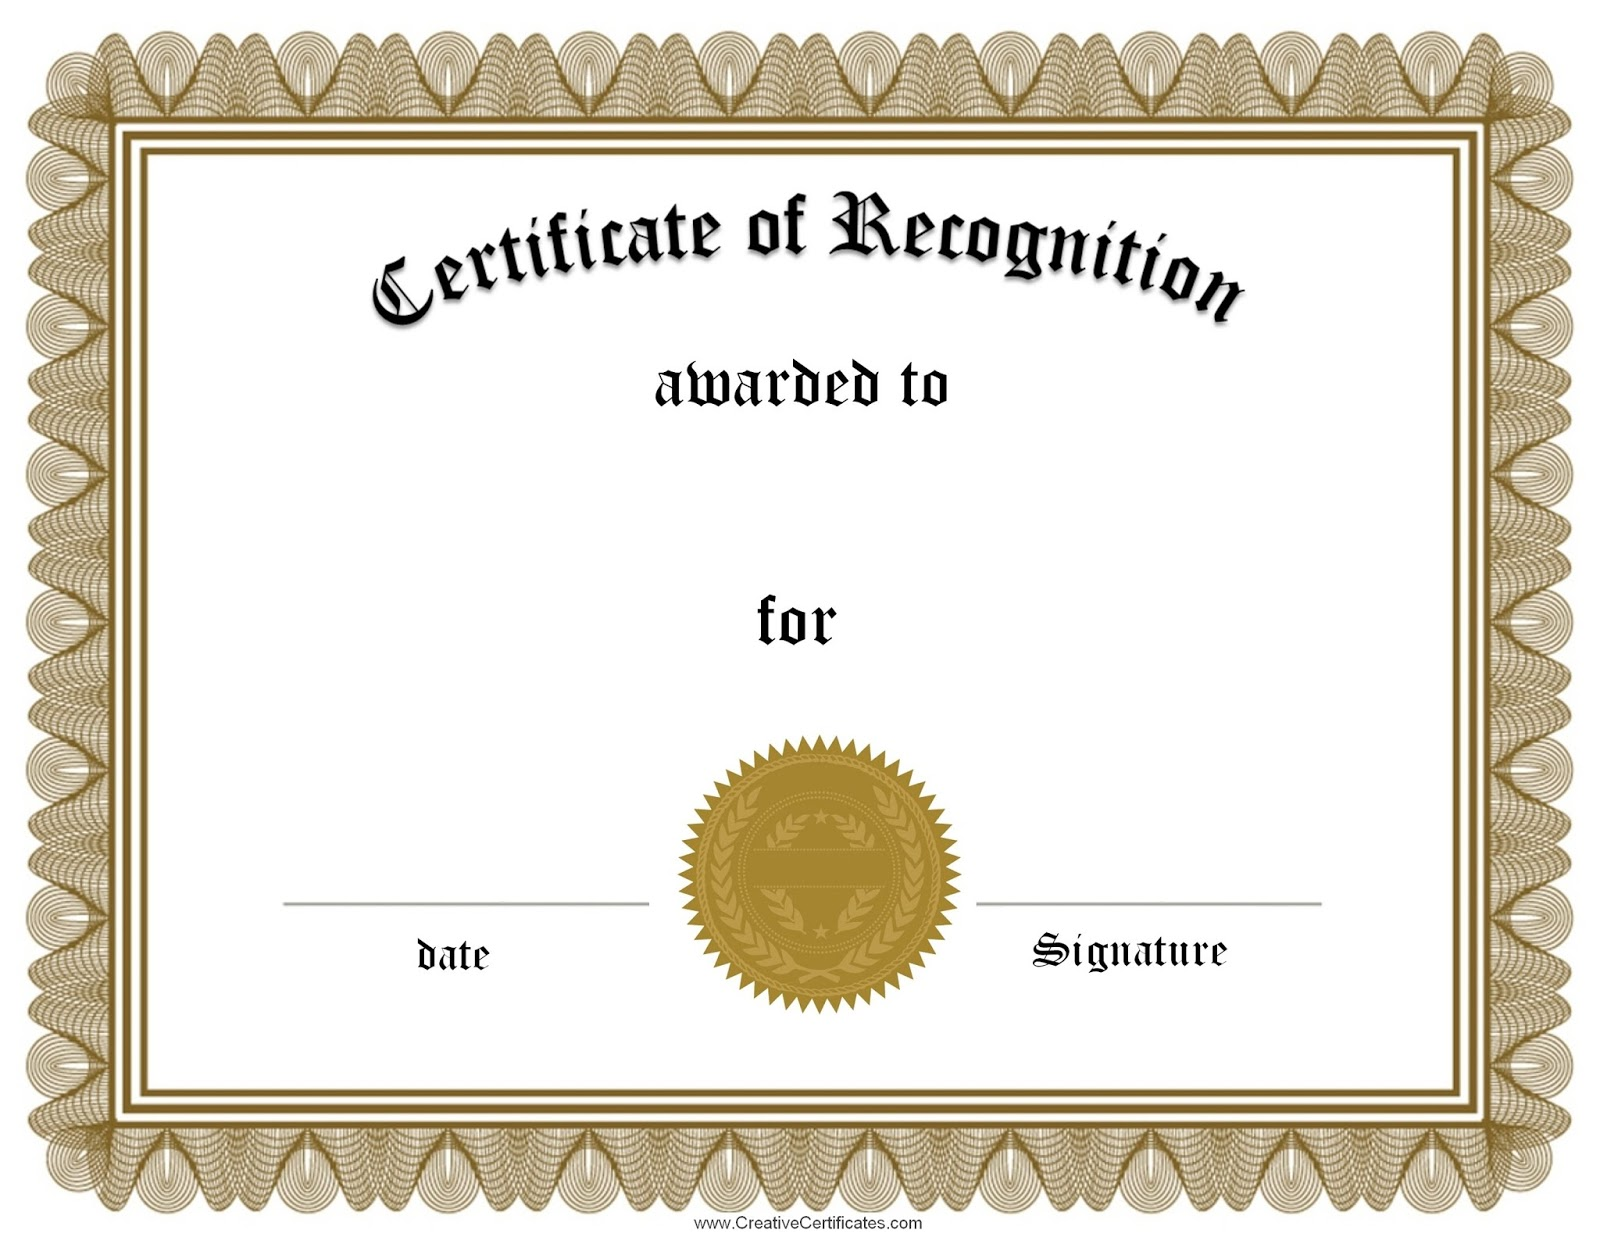 certificate of recognition, certificate of recognition template printable, employee recognition award certificate template, customize free printable award certificate, employee recognition awards, free award templates for word, free fillable certificate of appreciation, free printable employee recognition certificates, free printable fill in certificates, peer award wording examples, sample certificate of appreciation, certificate of appreciation wording